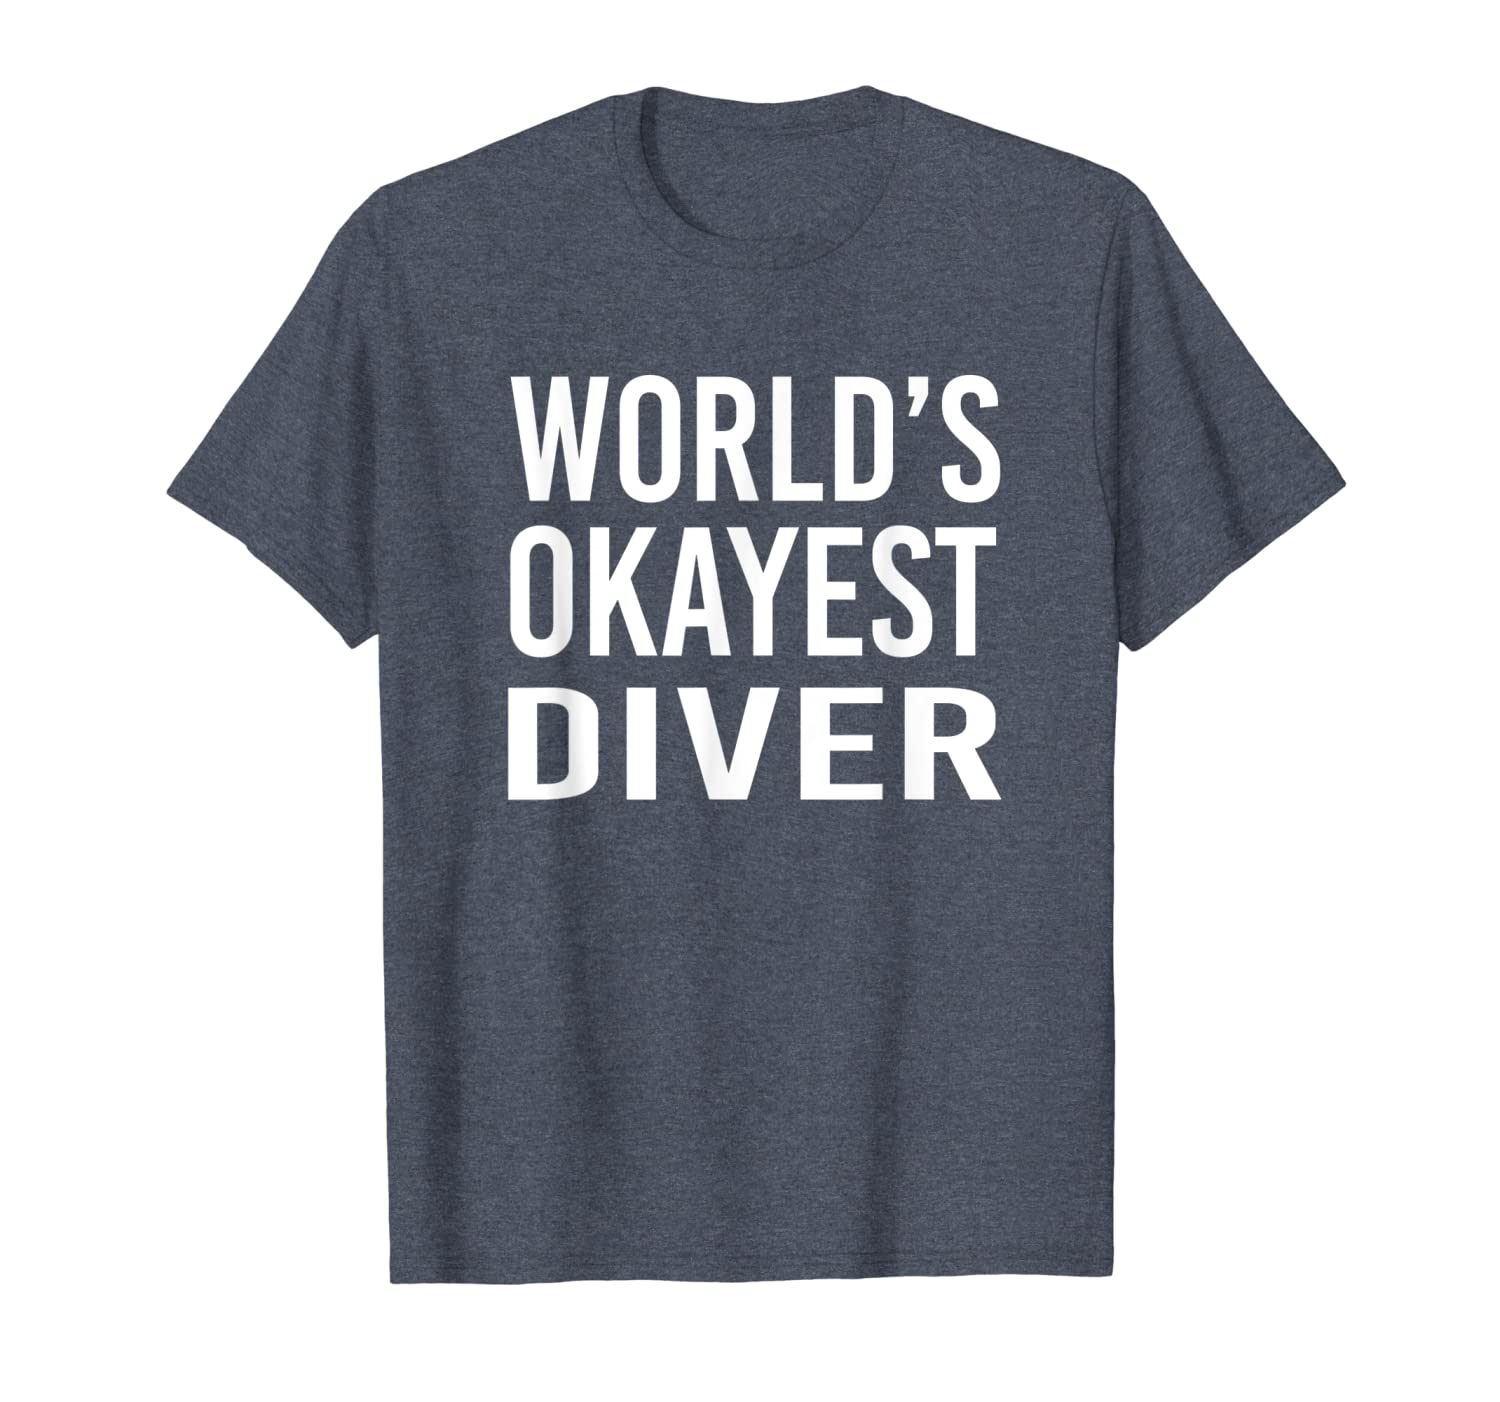 Worlds Okayest Diver Funny Best Gift Scuba Diving T-Shirt Unisex Tshirt